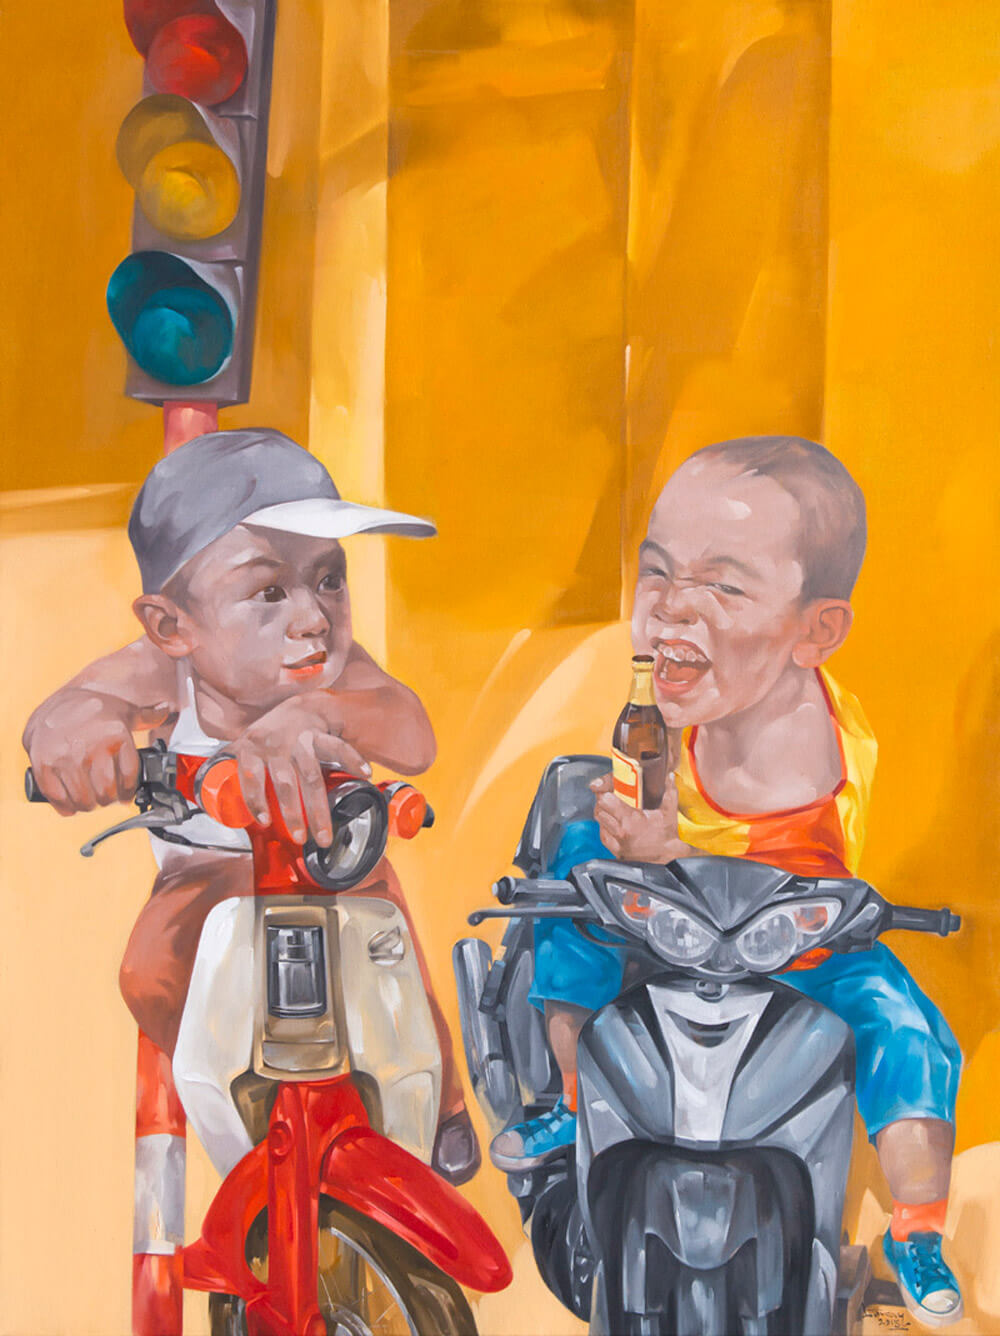 Hurry meal in oil in canvas, Hanoi art gallery